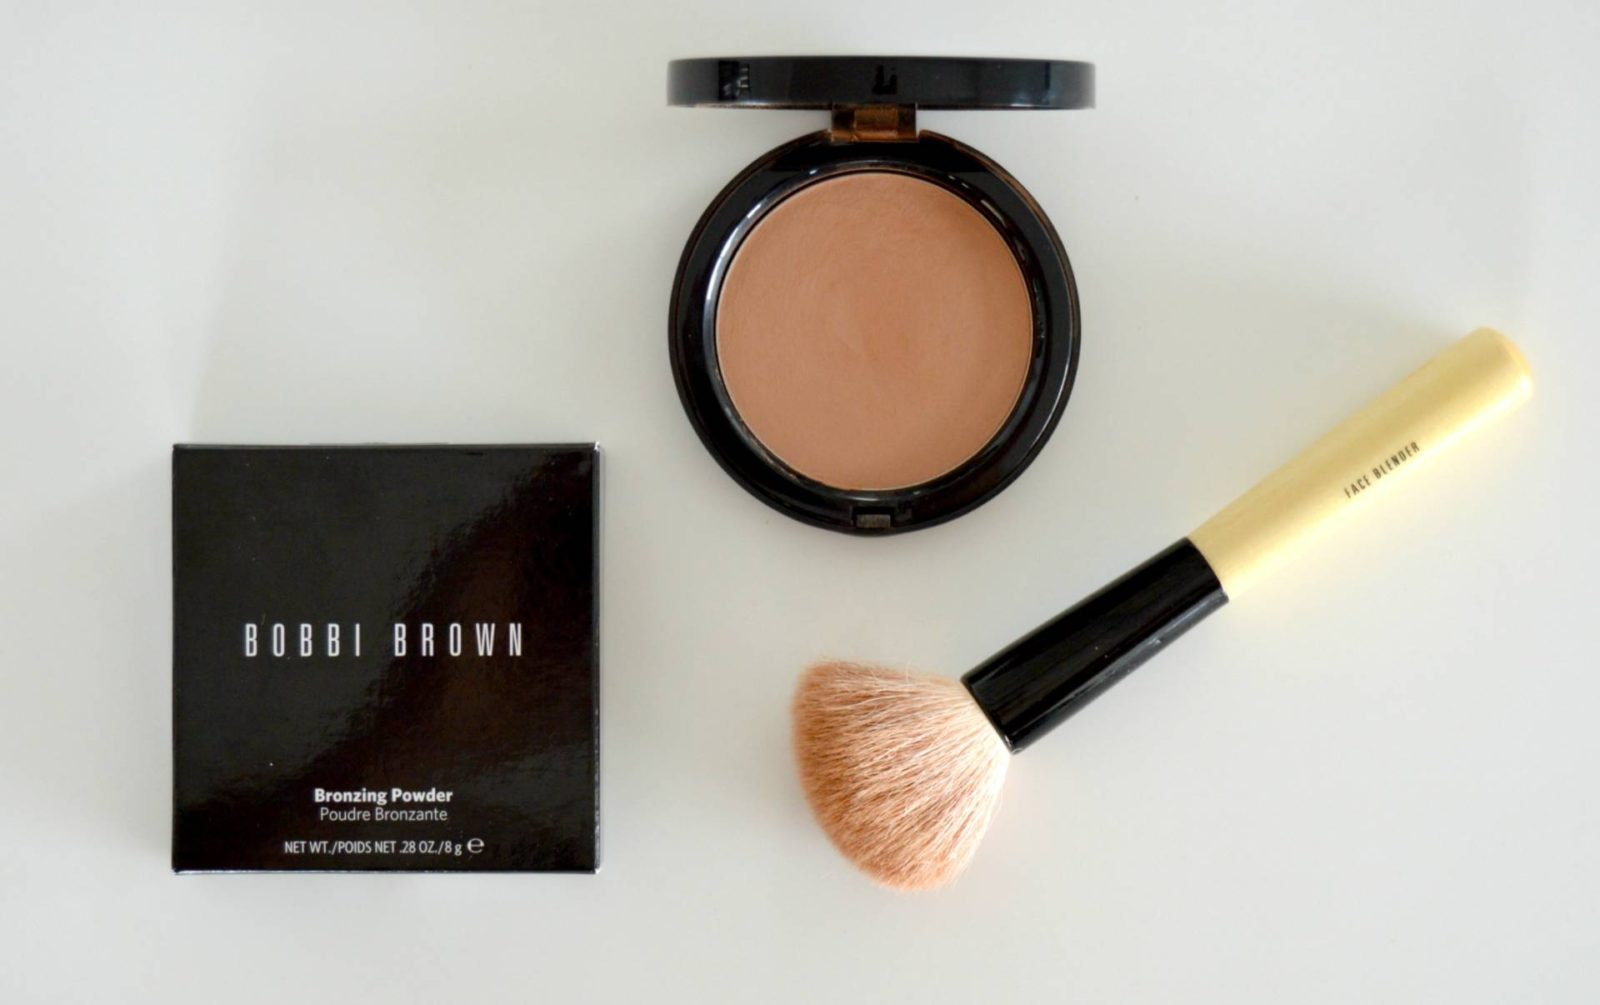 A Perfect Tan – BOBBI BROWN Bronzing Powder